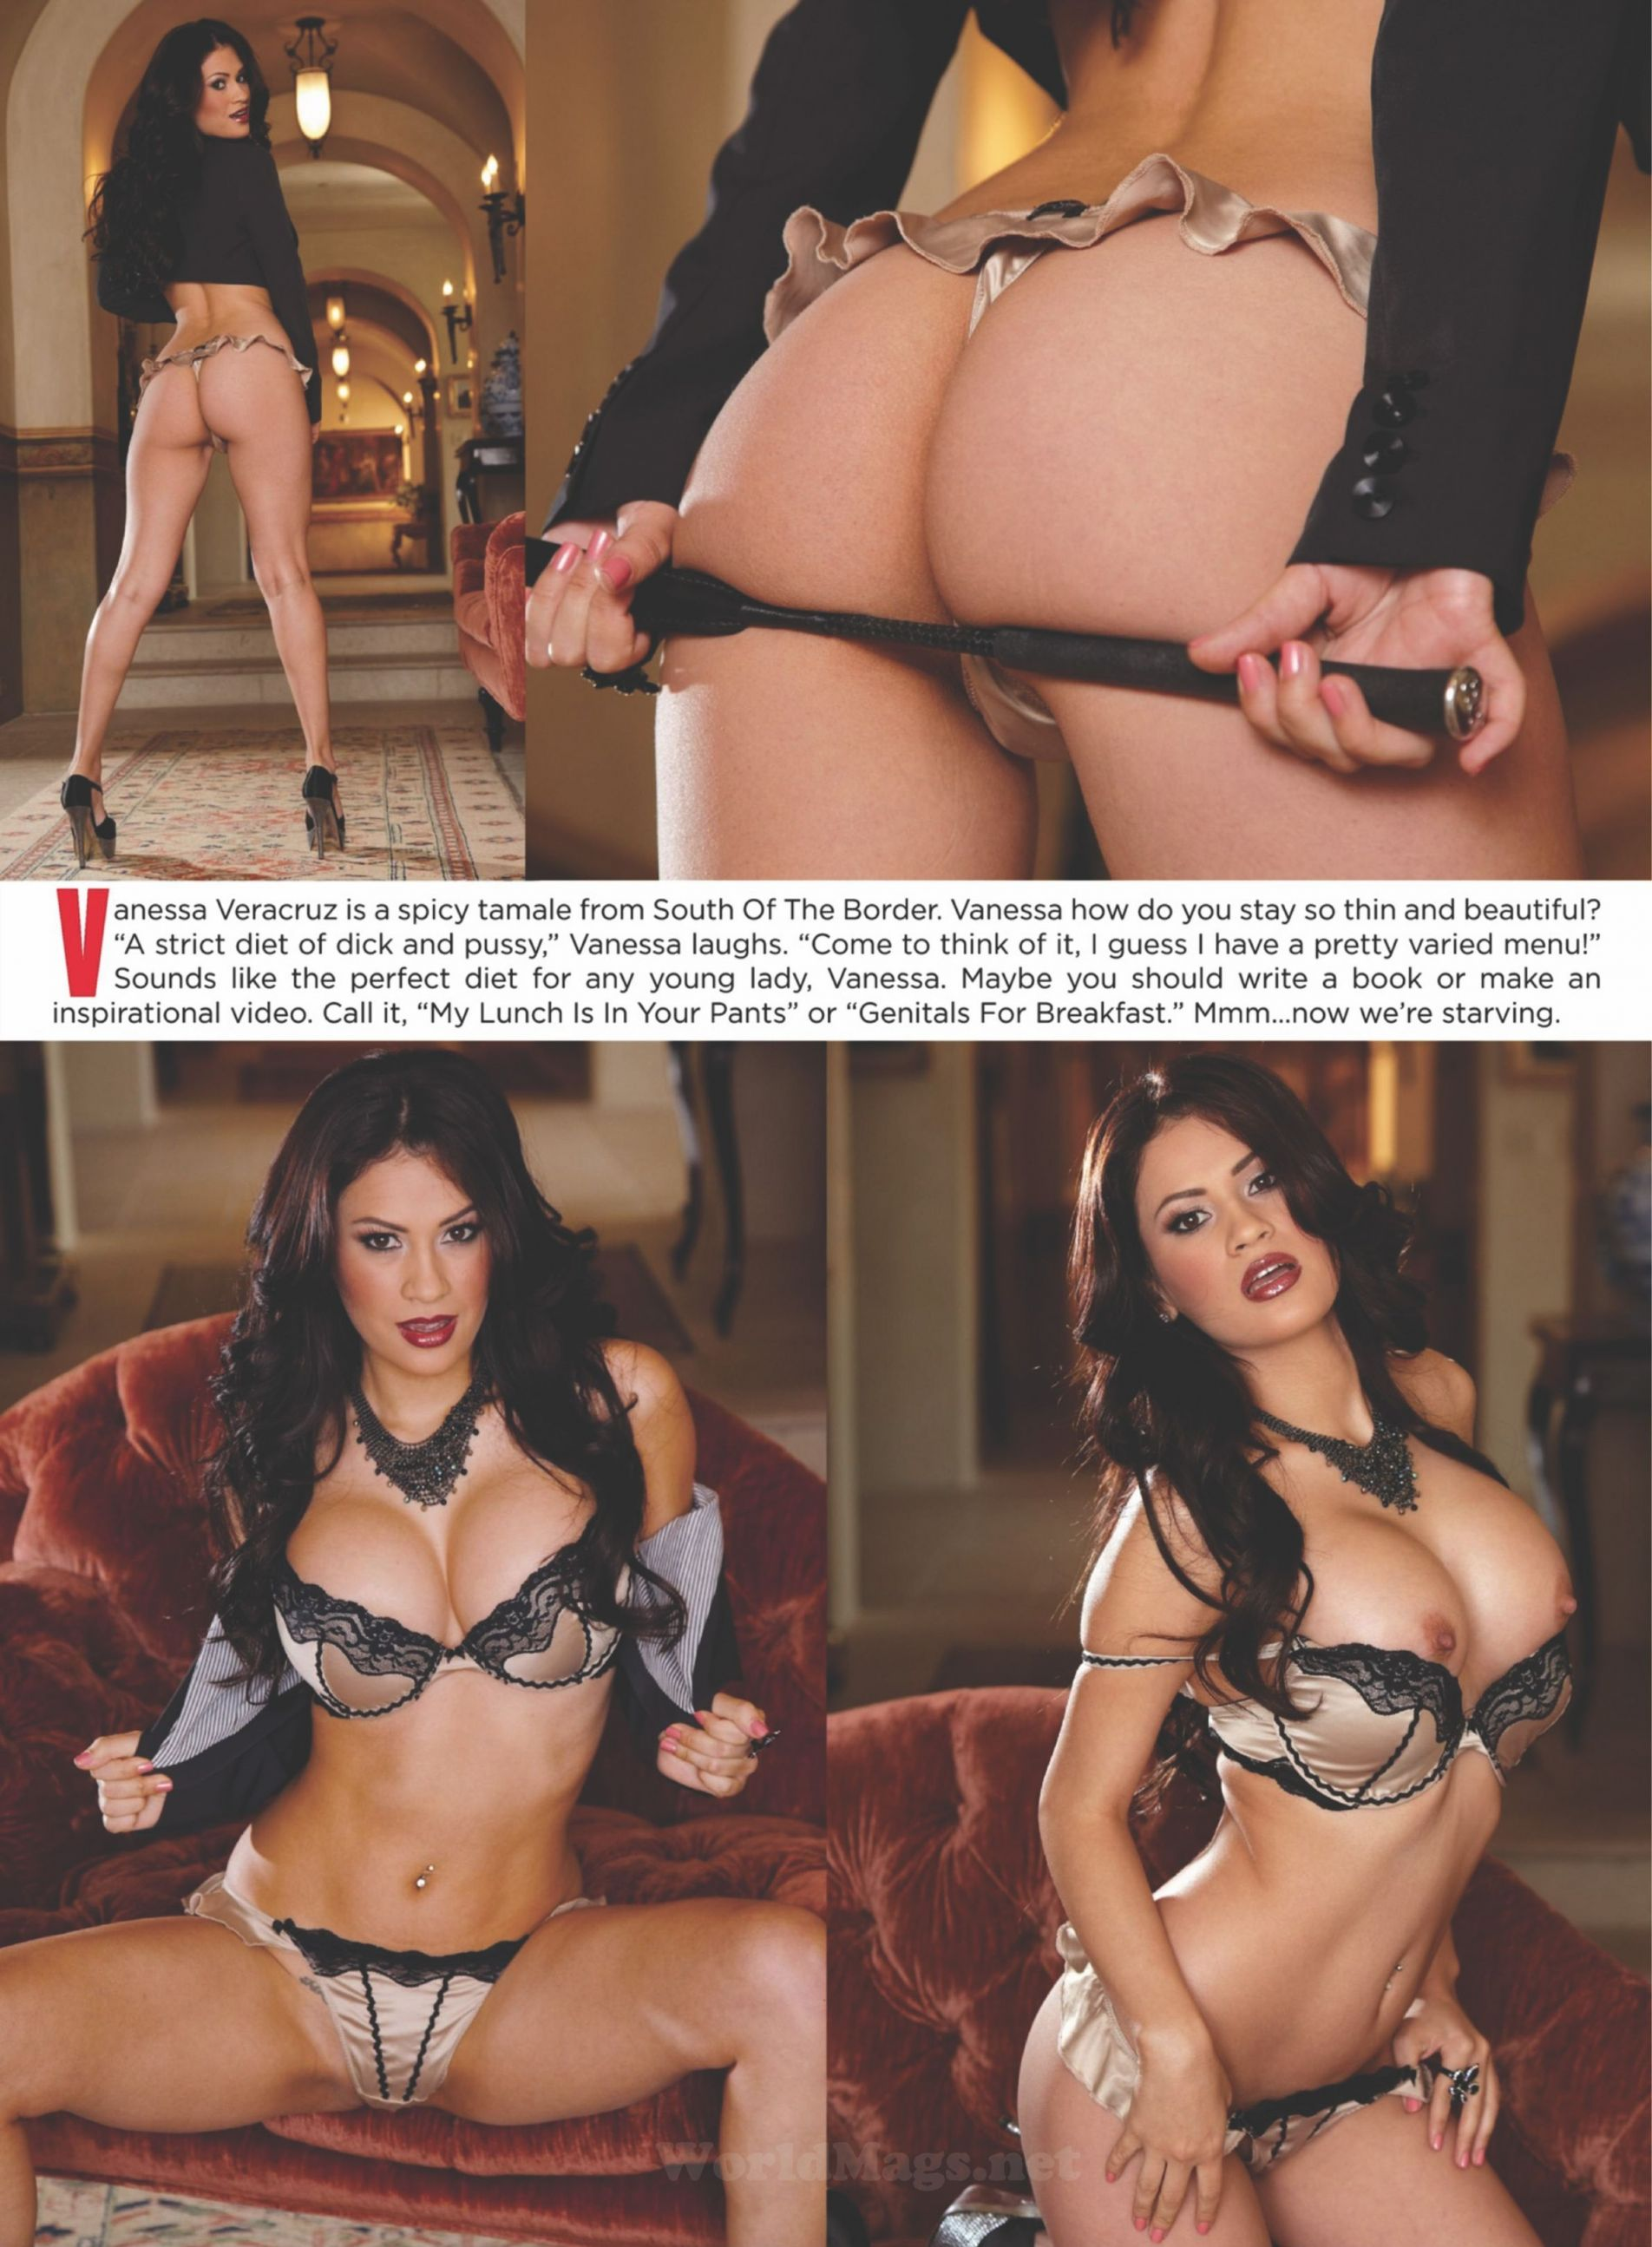 Vanessa Veracruz @MsVeracruzXXX On The Cover Of High ...